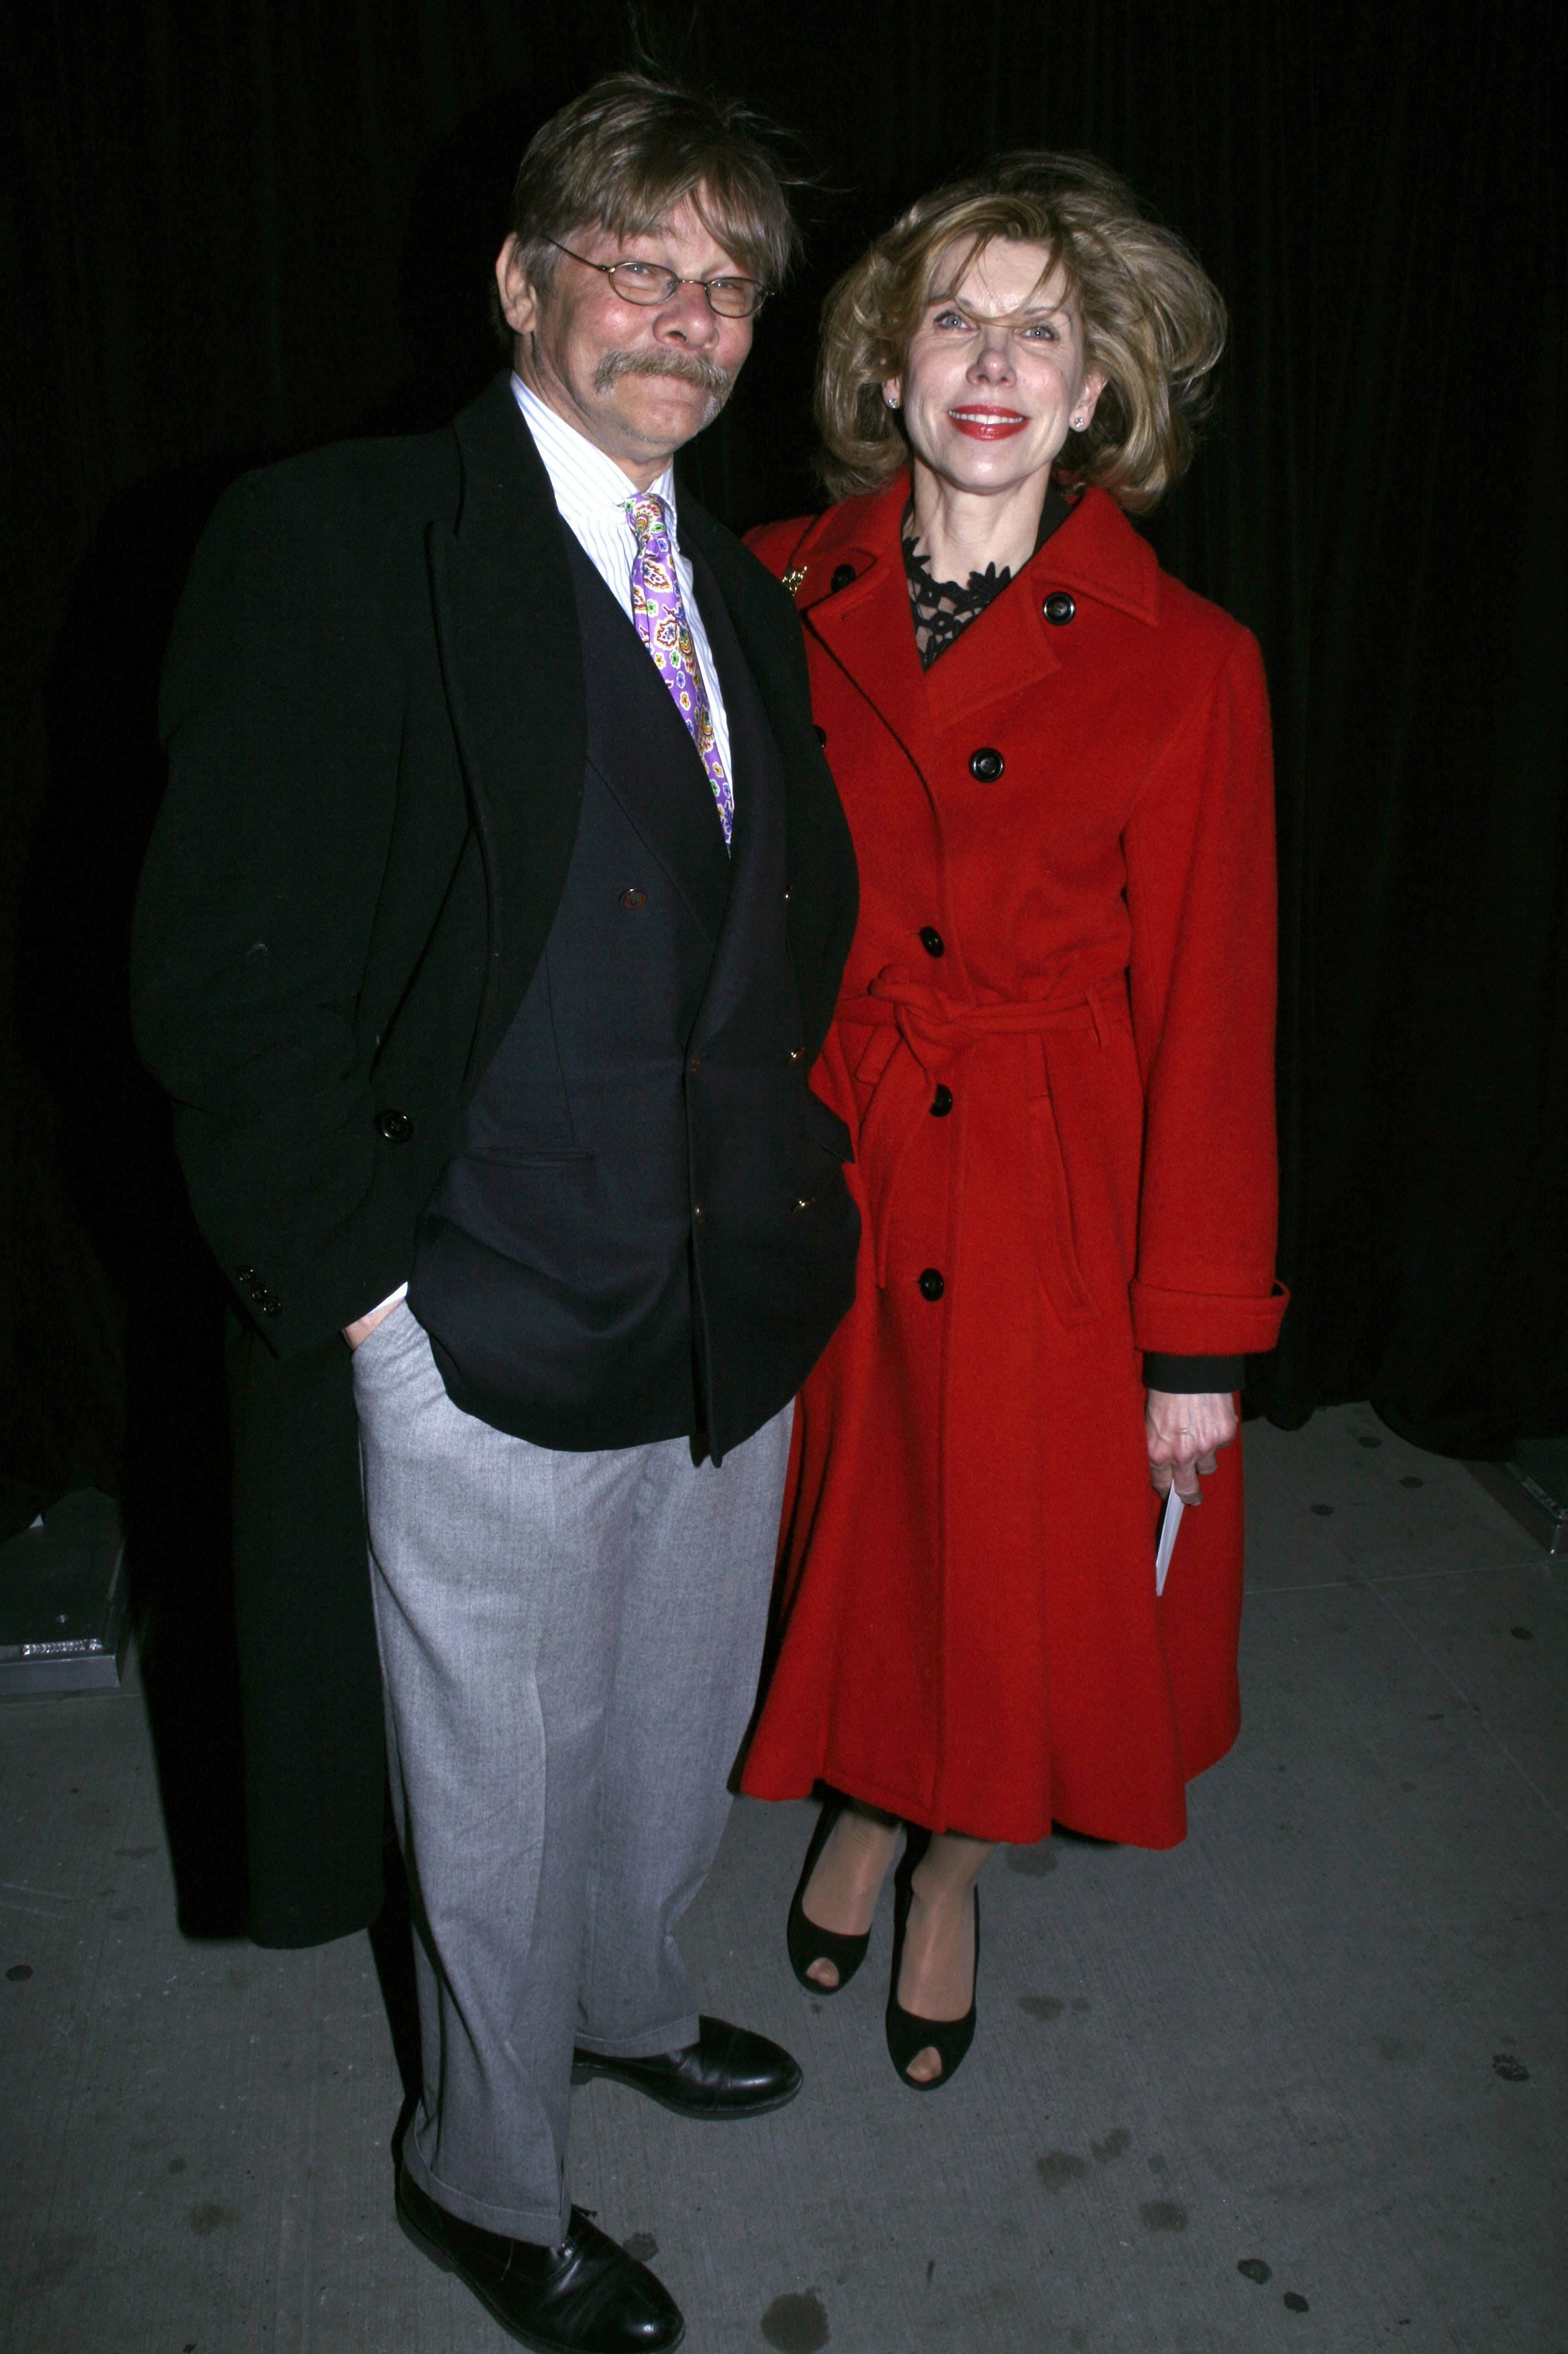 Christine Baranski and Matthew Cowles in New York City. on March 29, 2007 | Source: Getty Images/Global Images Ukraine